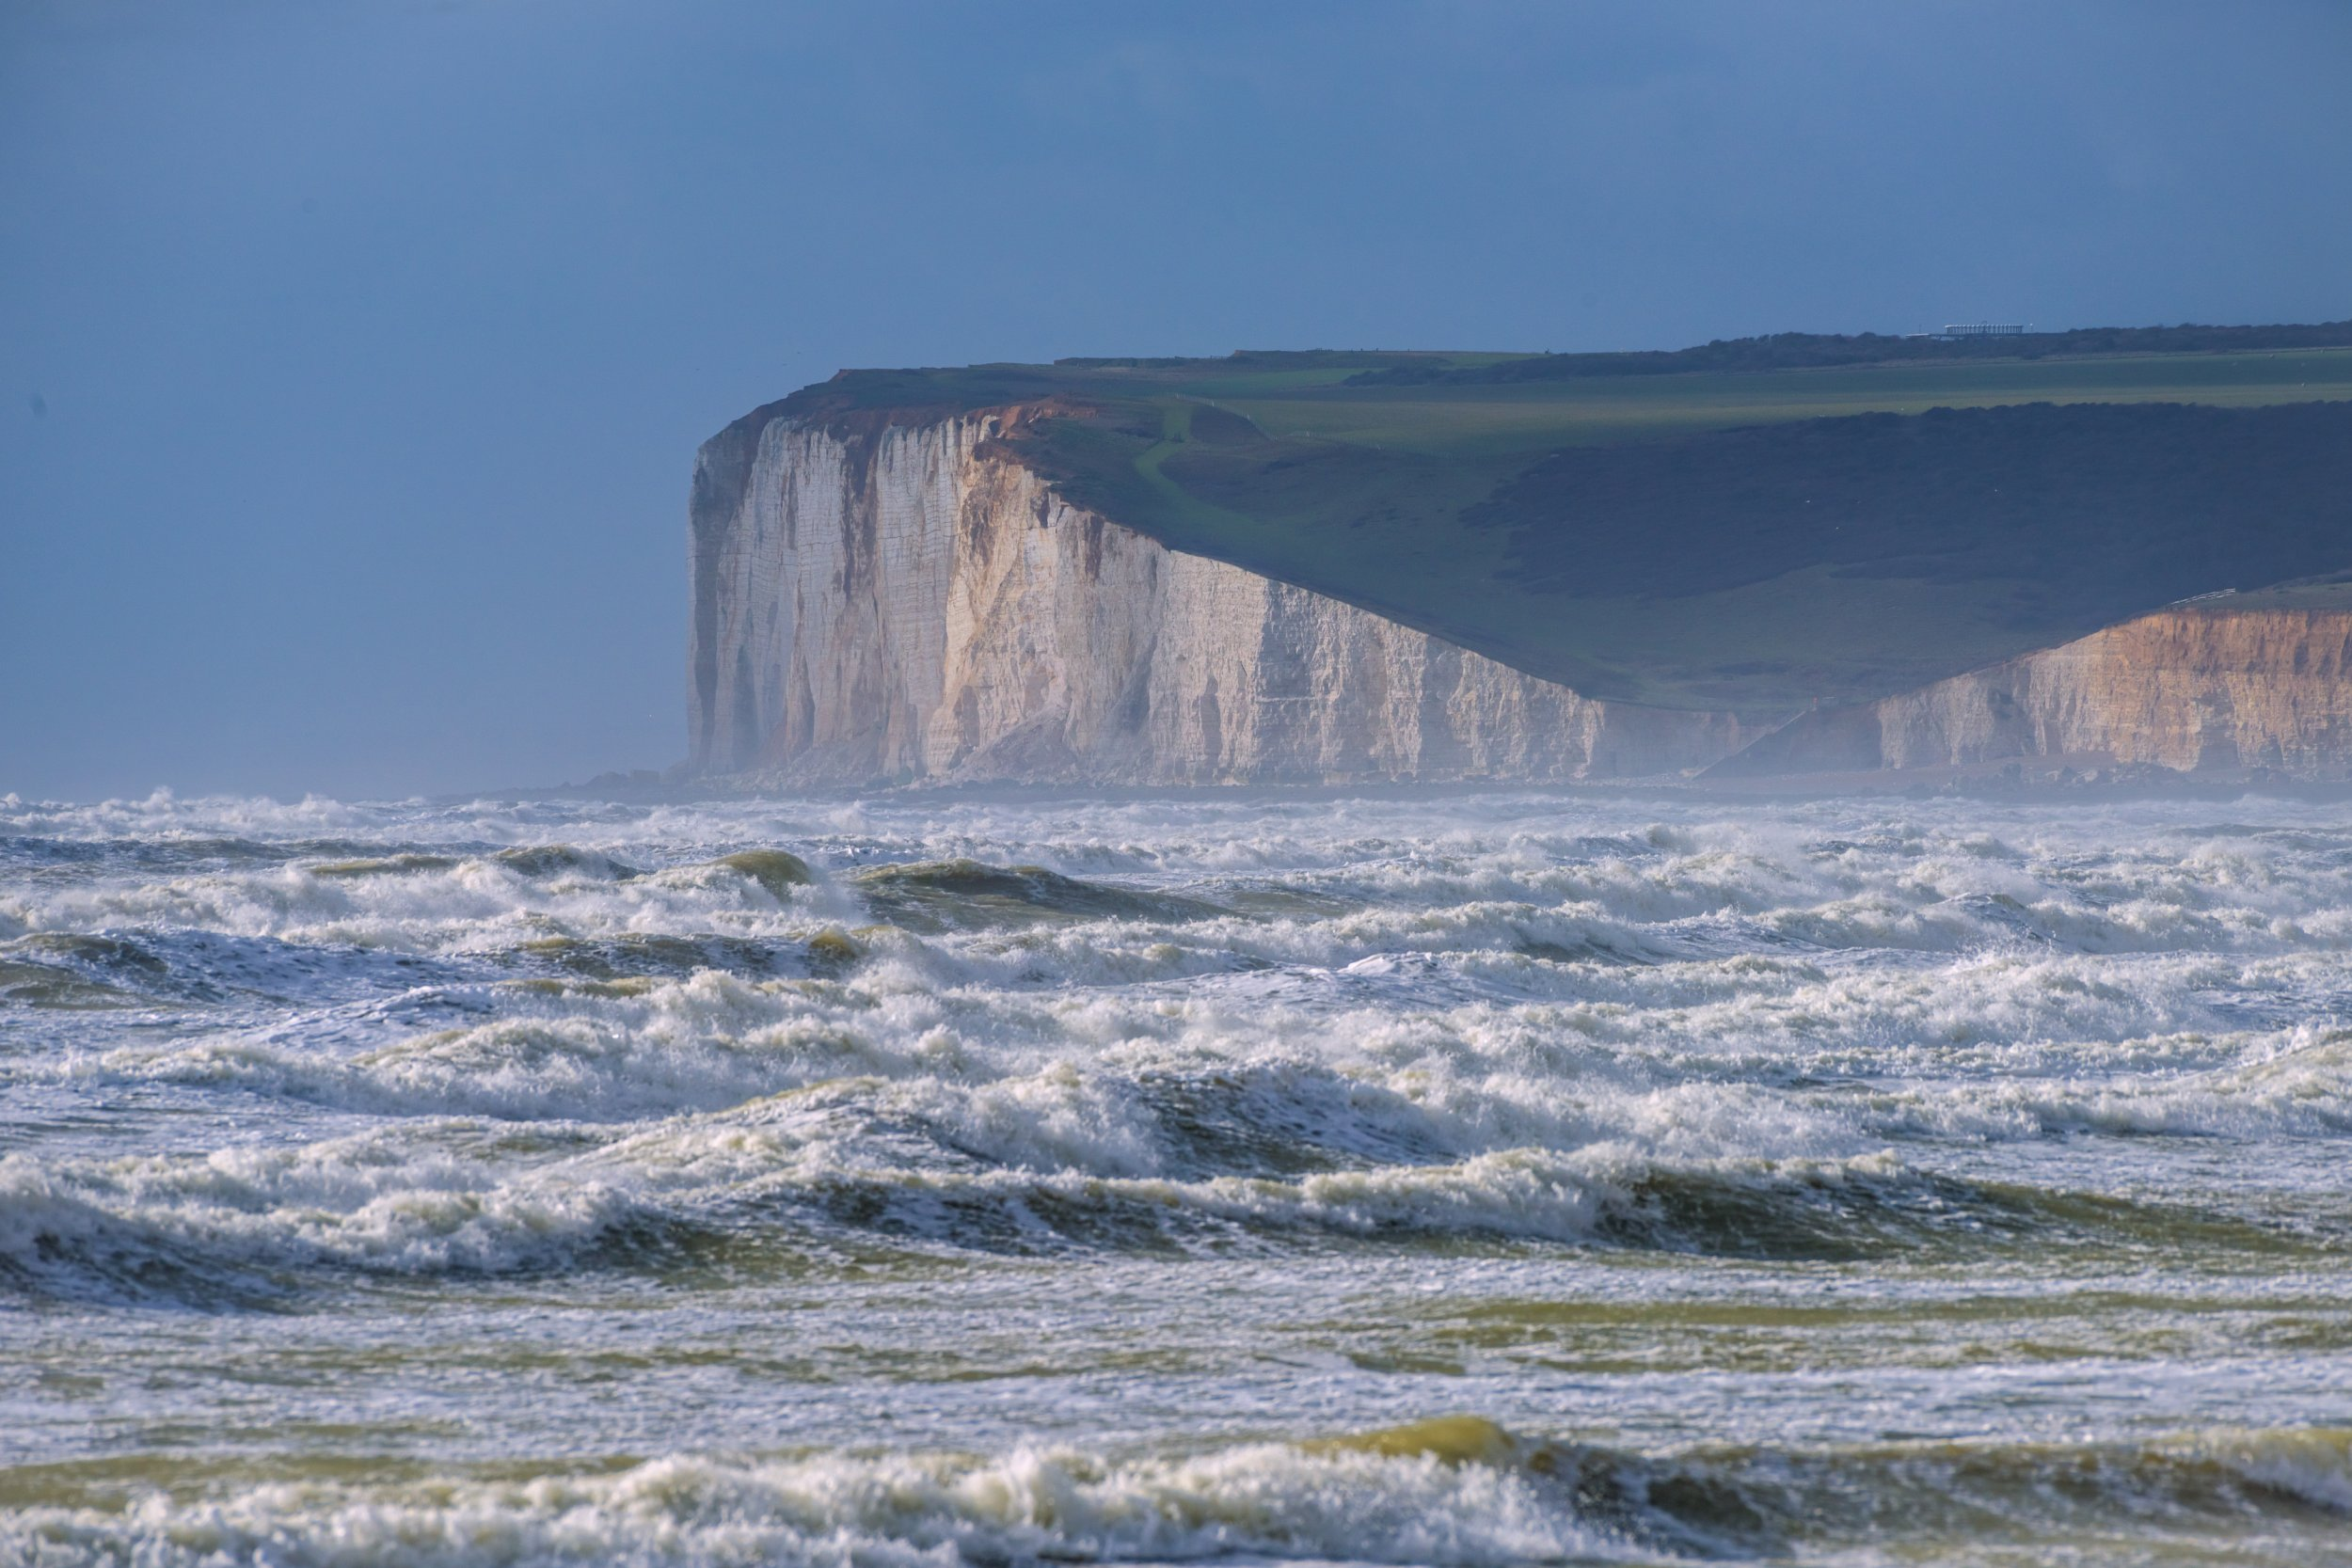 EAST SUSSEX, UNITED KINGDOM - FEBRUARY 23: Tail end of Storm Doris as it clears the south coast at The Birling Gap National Trust Coastal Reserve, near Beachy Head on February 23, 2017 in East Sussex, England. PHOTOGRAPH BY Benjamin Graham / Barcroft Images London-T:+44 207 033 1031 E:hello@barcroftmedia.com - New York-T:+1 212 796 2458 E:hello@barcroftusa.com - New Delhi-T:+91 11 4053 2429 E:hello@barcroftindia.com www.barcroftimages.com